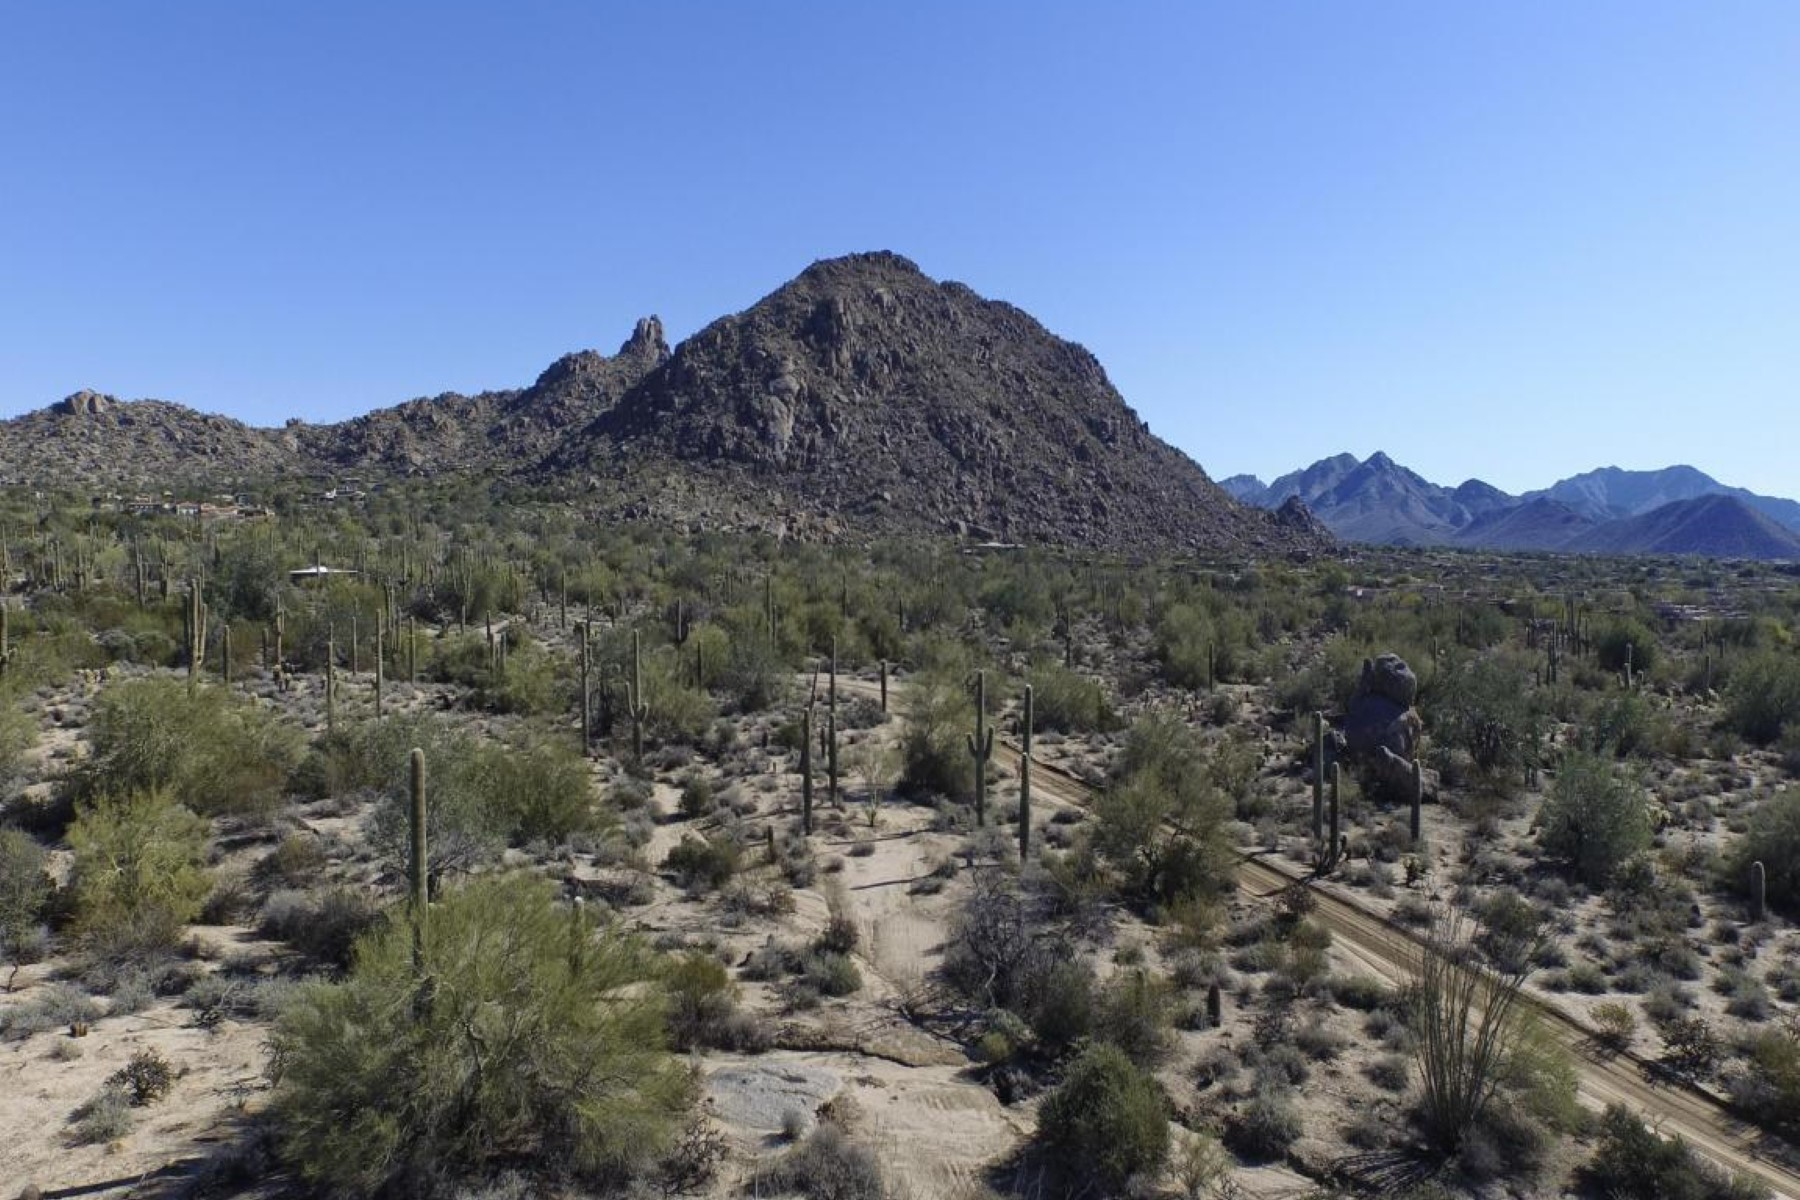 Property For Sale at 5 acres located in the heart of North Scottsdale